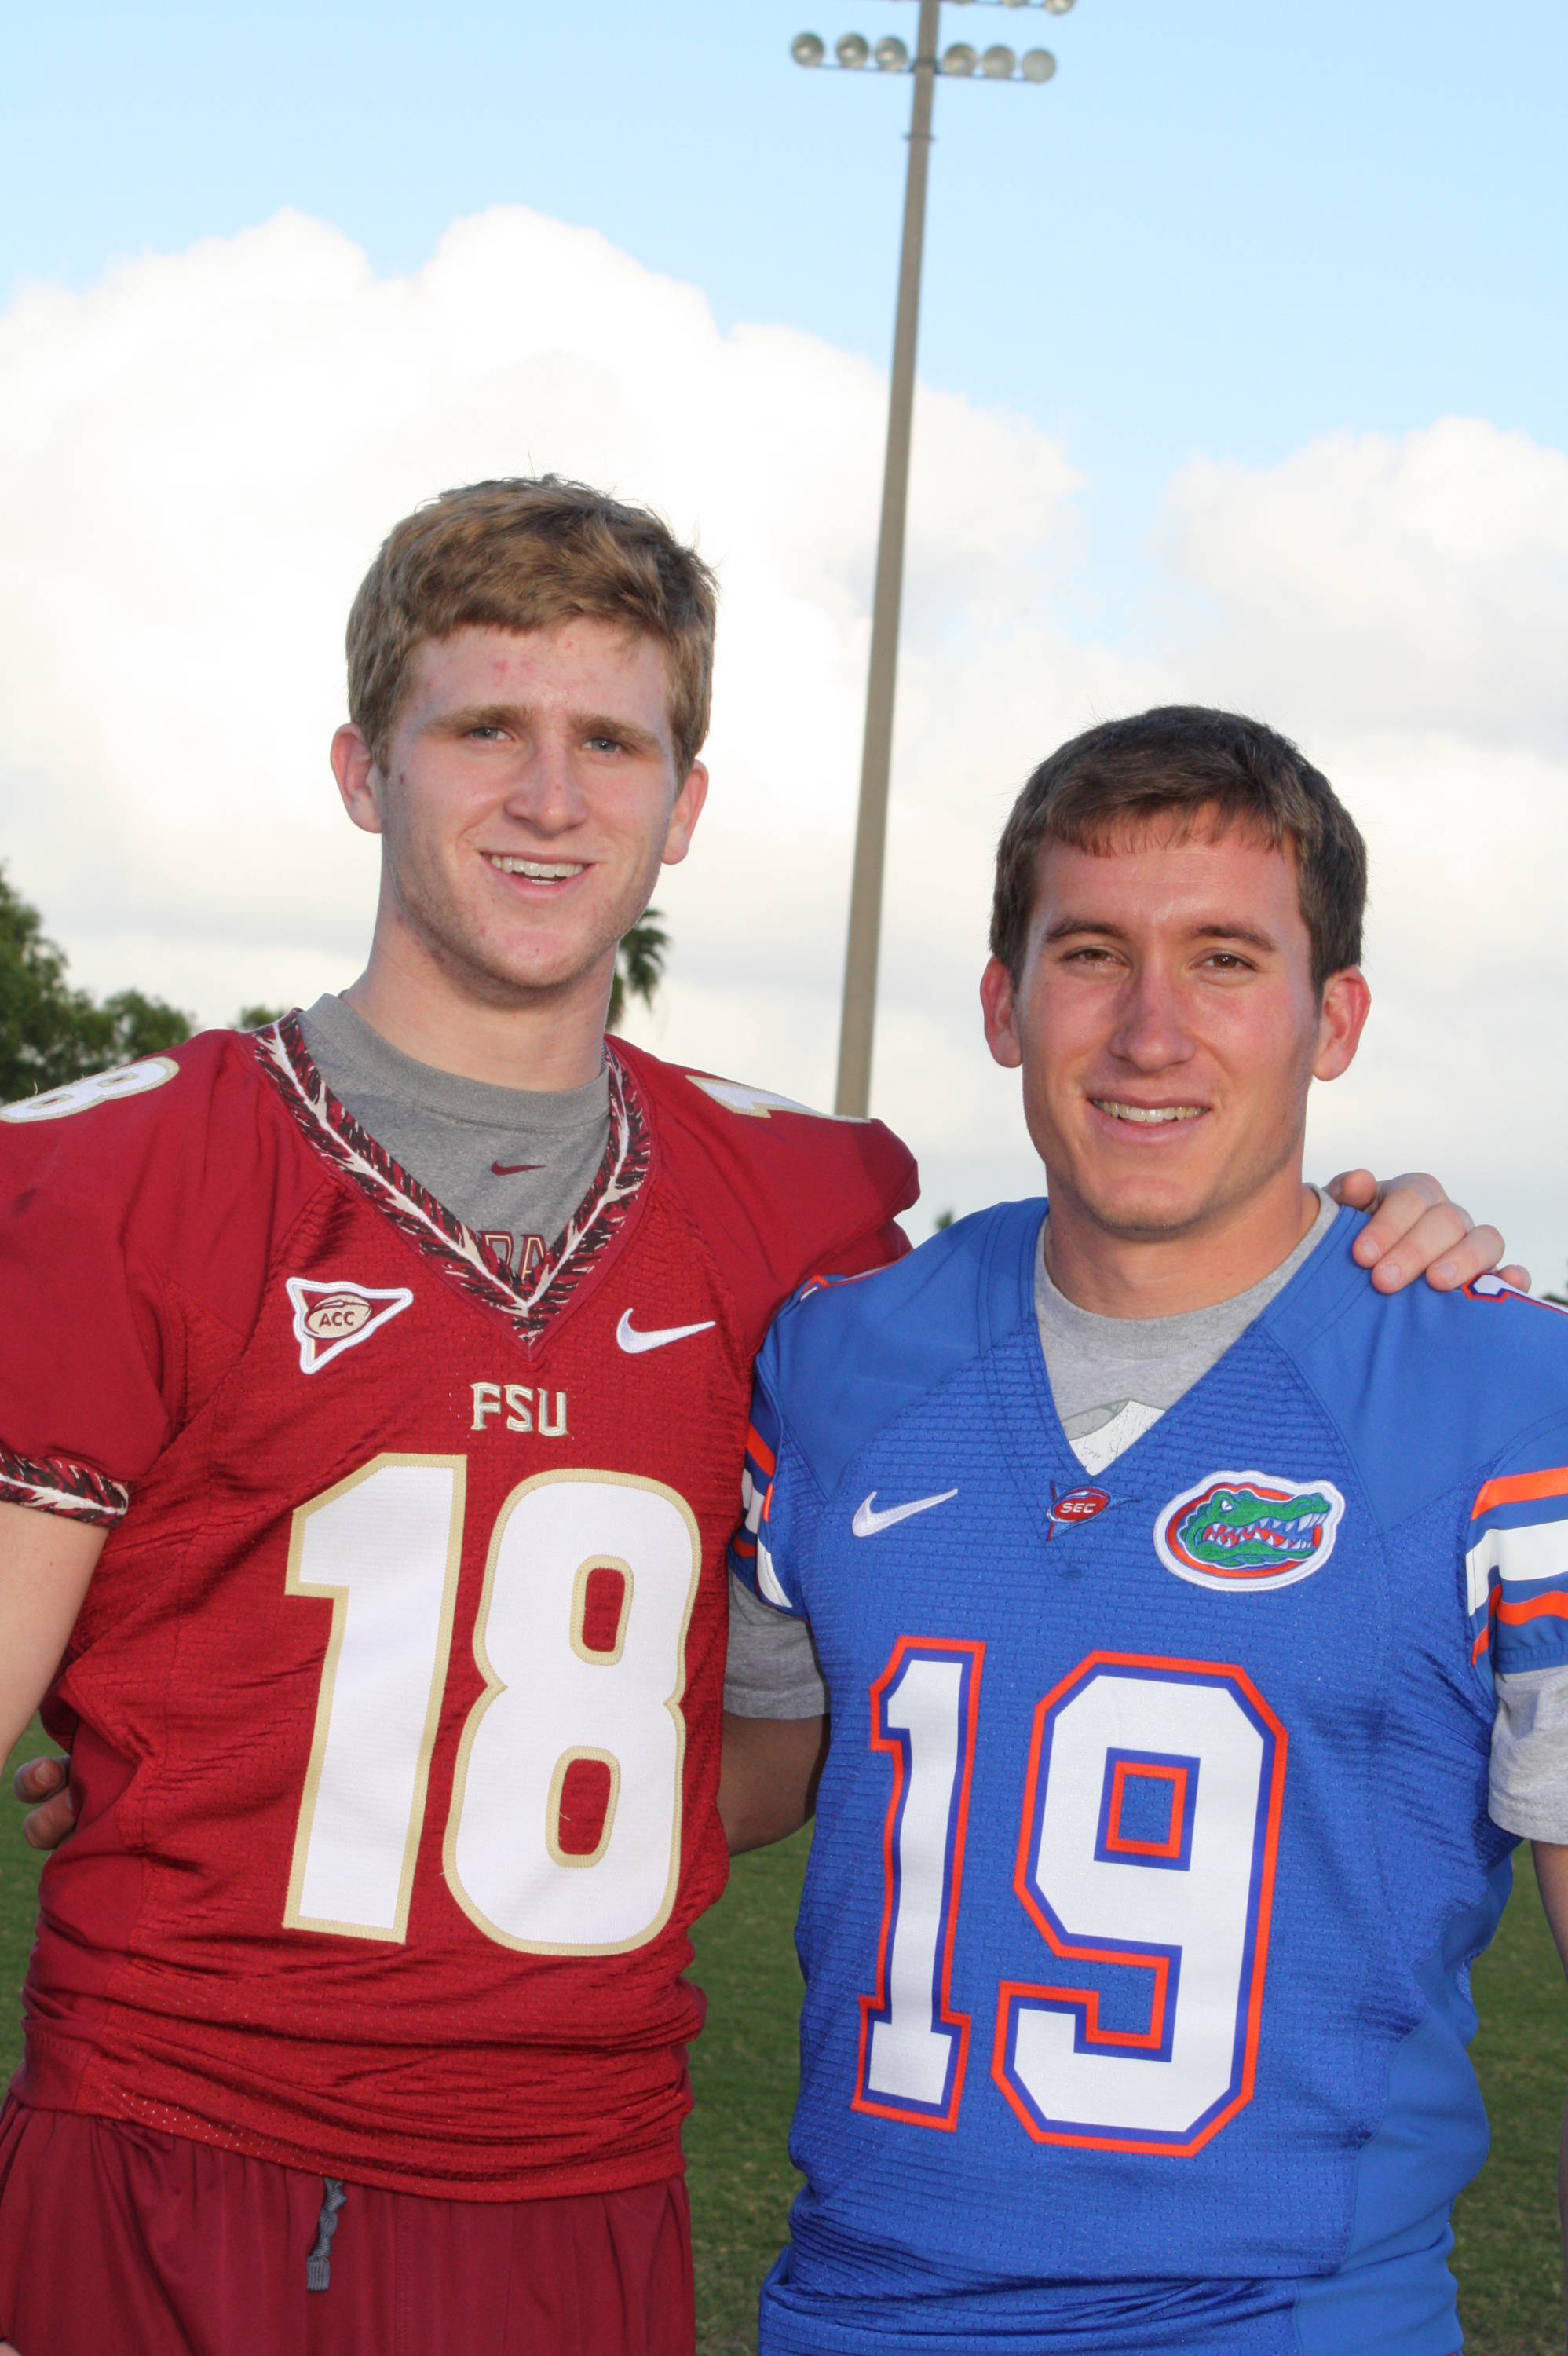 Rivals two weeks ago, Hopkins and Florida's Caleb Sturgis had a chance to spend time in a less stressful environment.